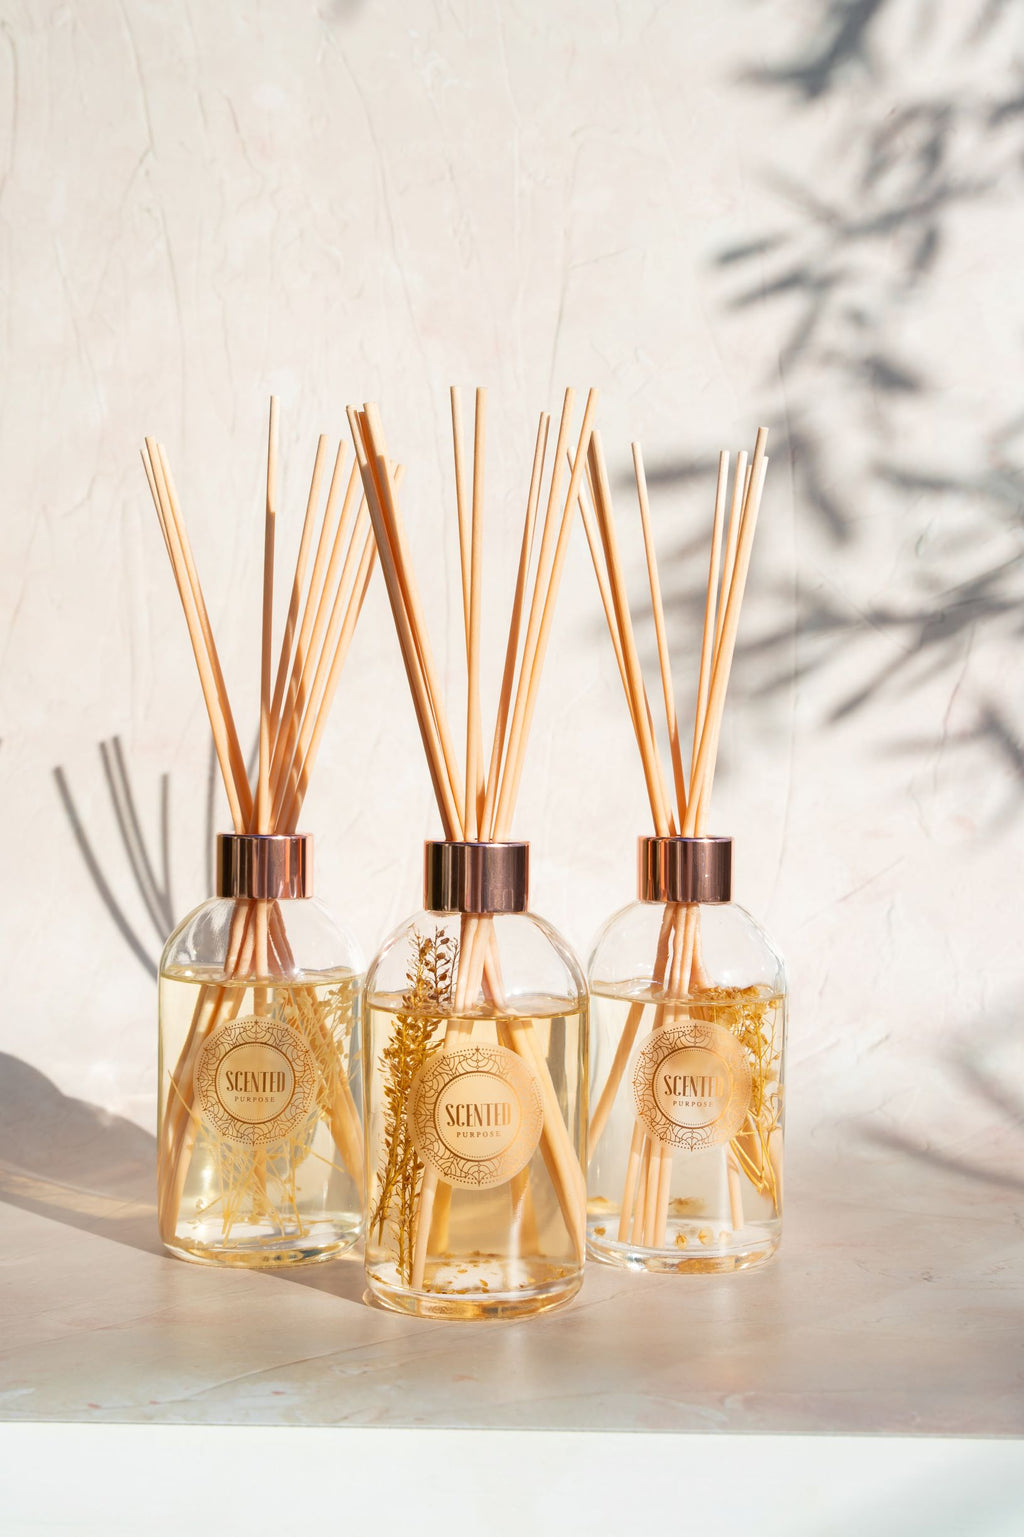 Botanical Reed Diffuser